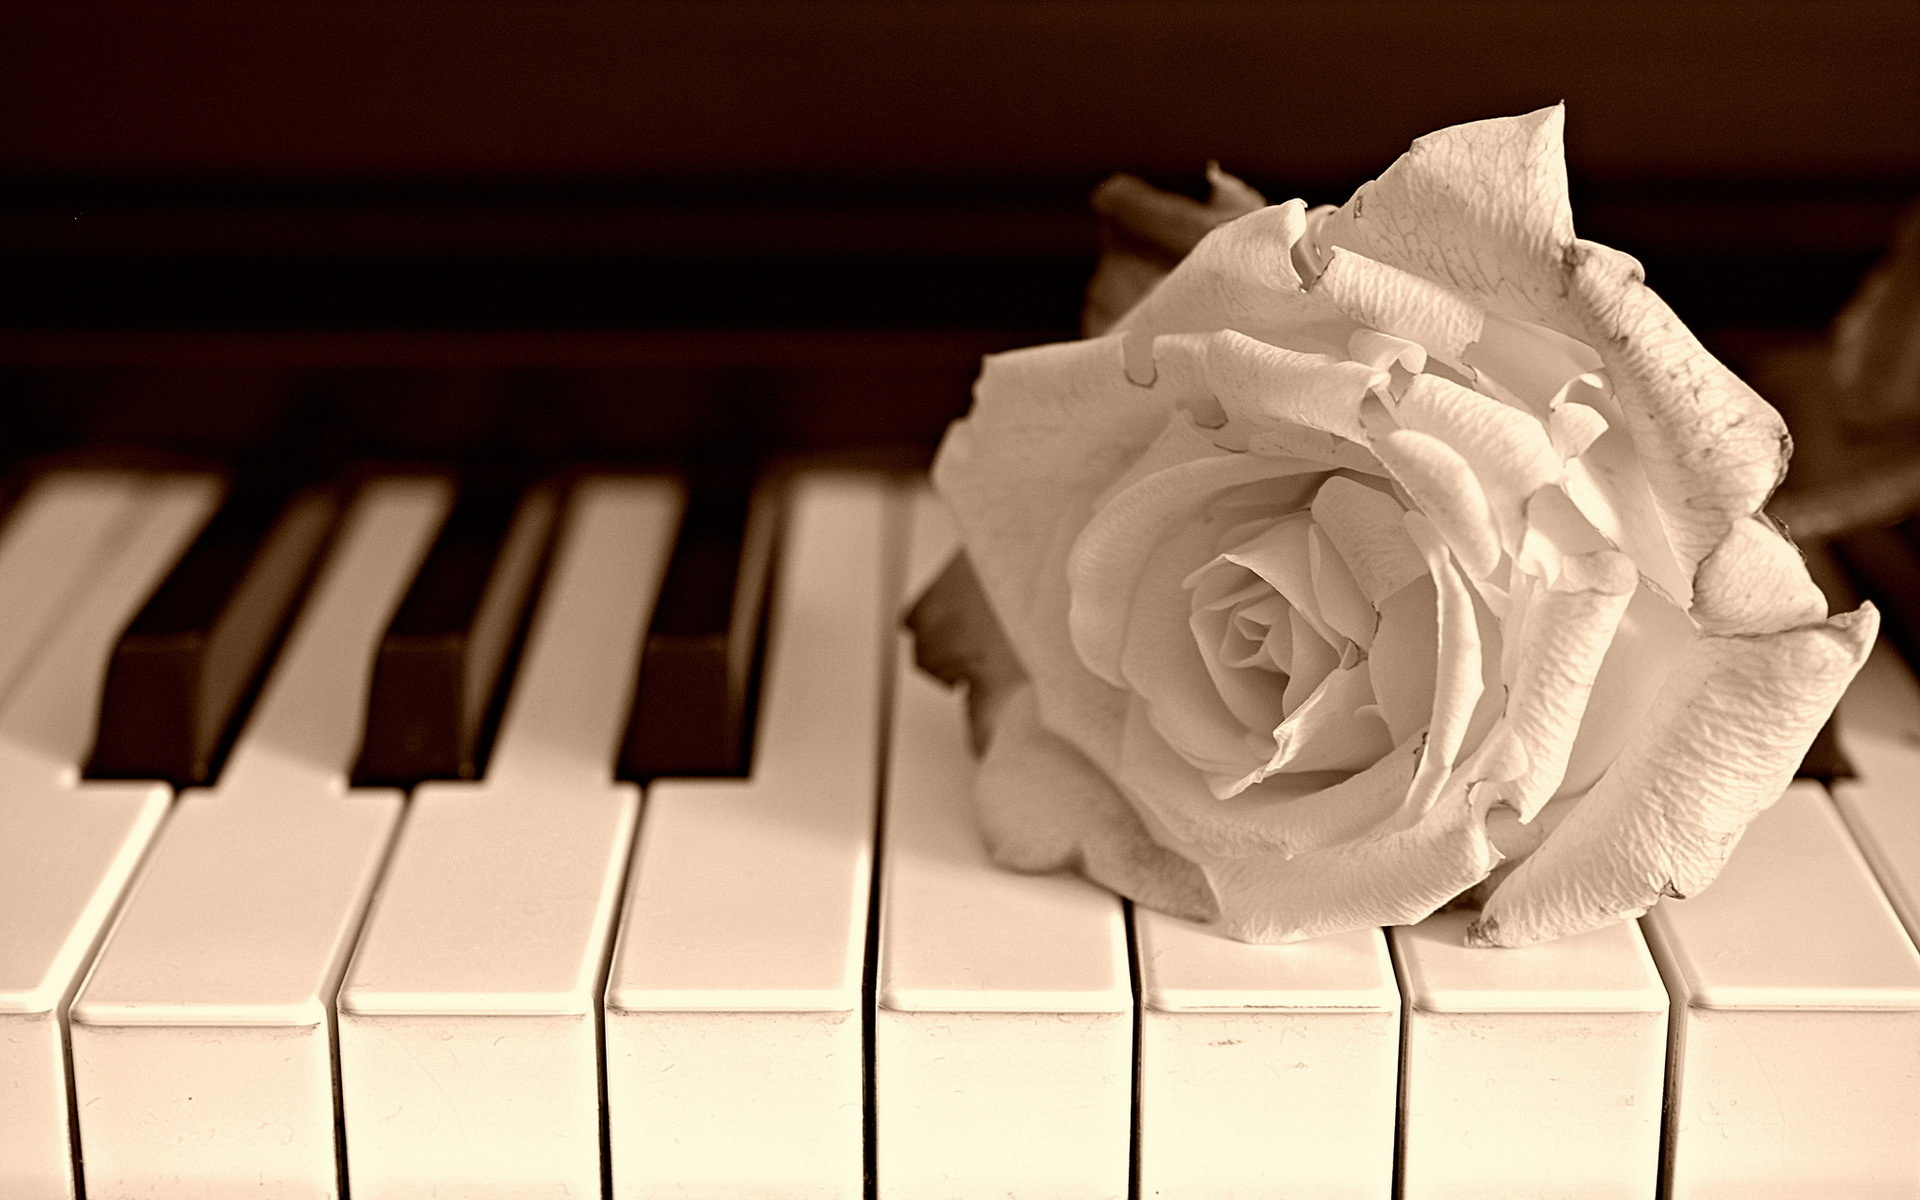 Piano Music Wallpaper: Wallpaper, High Definition, High